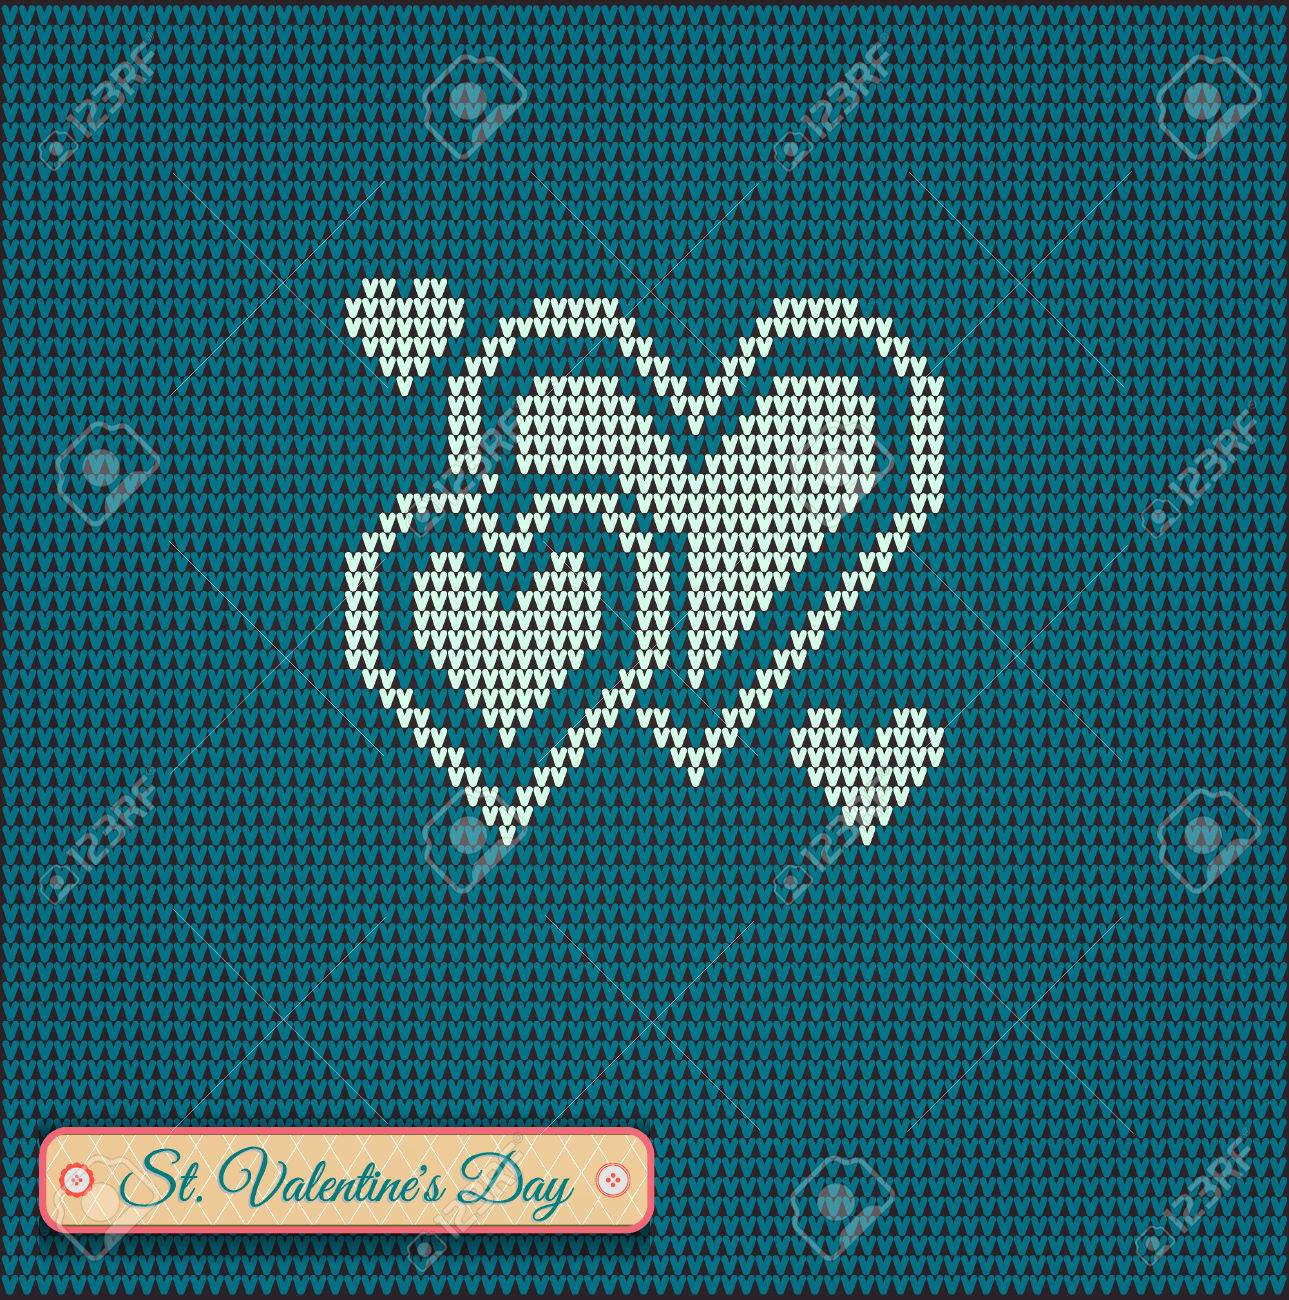 Classic Knitted Pattern With Hearts. Valentines Day Banner, Knitting ...